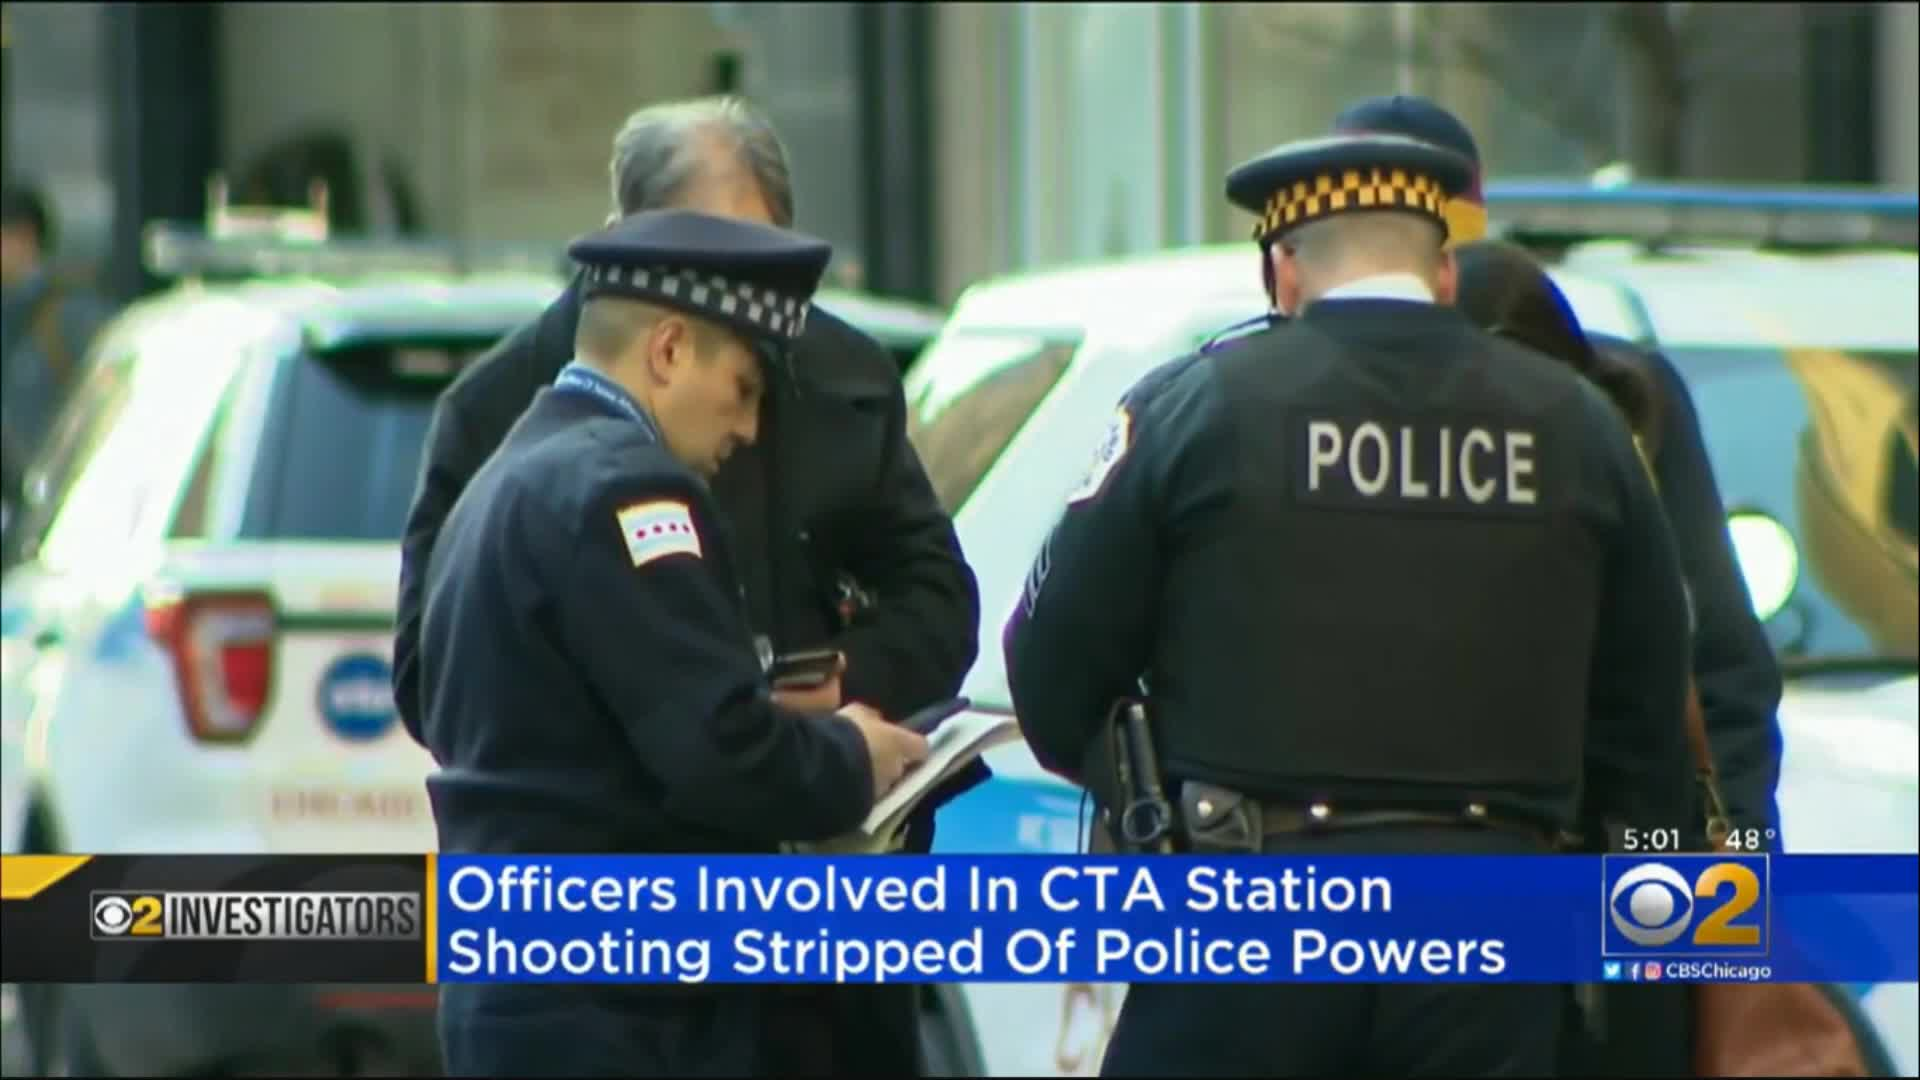 COP in CTA shooting stripped of police powers